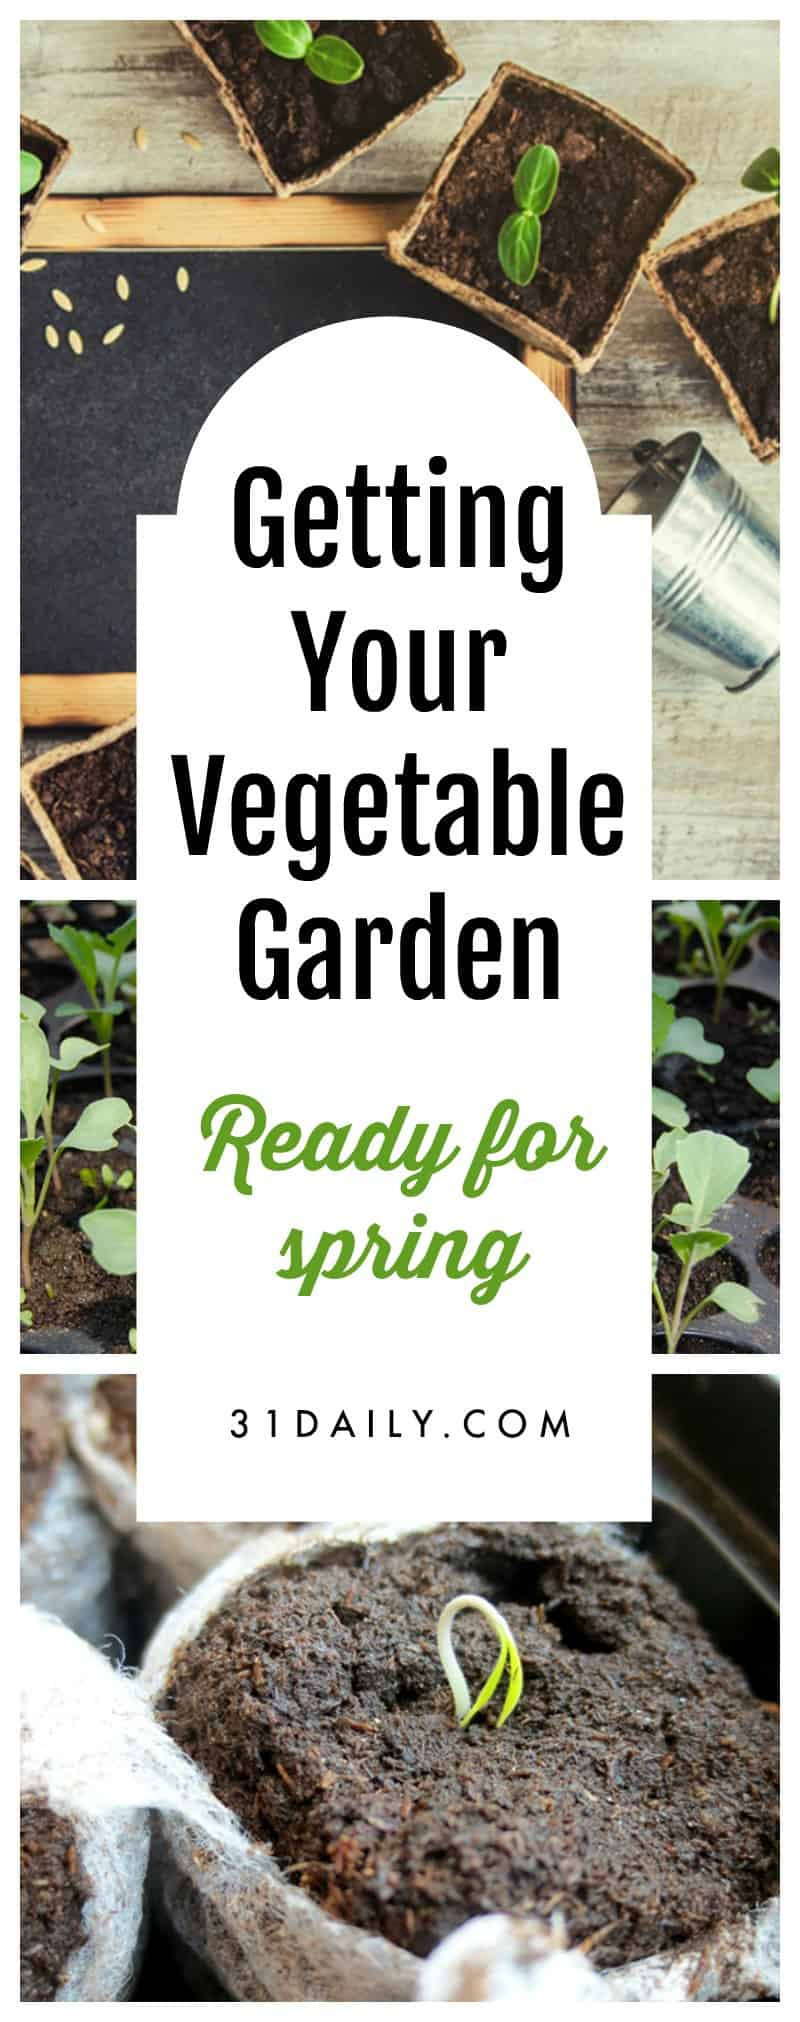 5 Ways to Get Your Vegetable Garden Ready for Spring | 31Daily.com